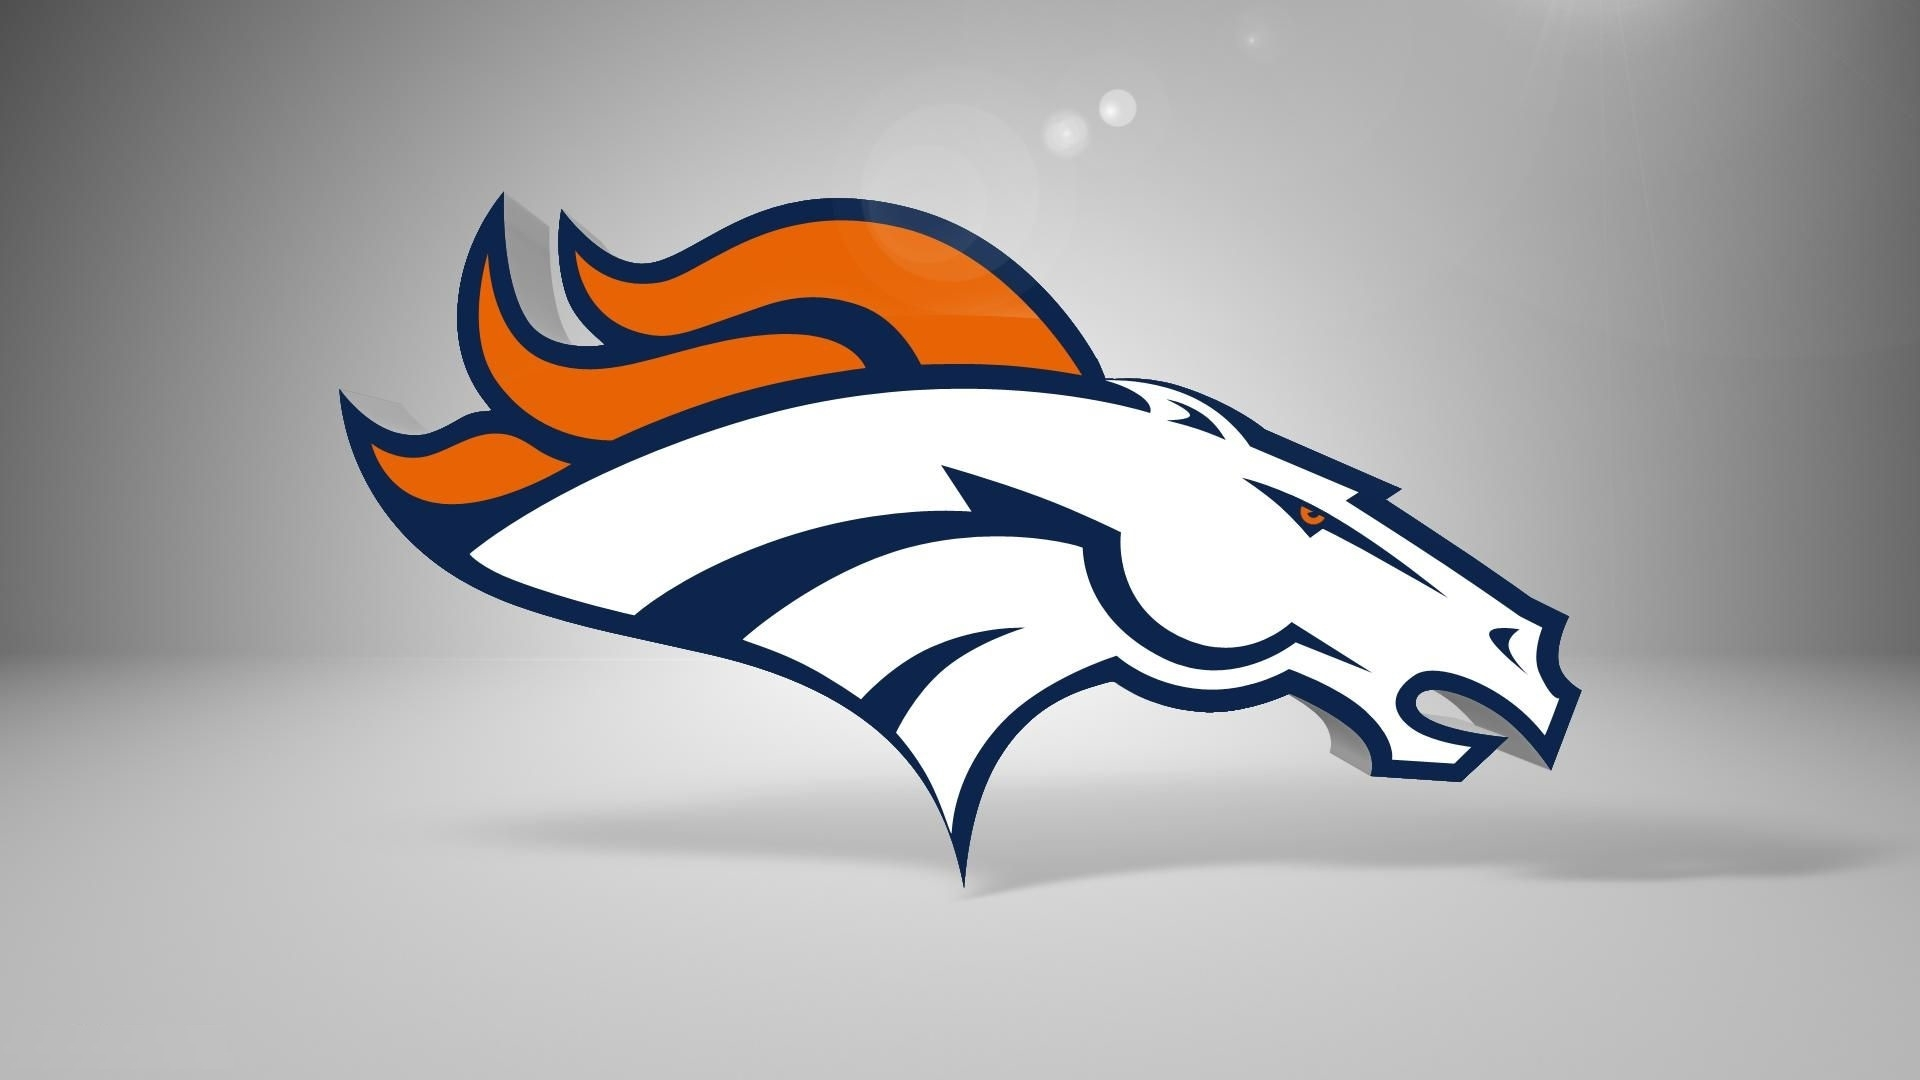 denver broncos logo wallpaper hd - media file | pixelstalk